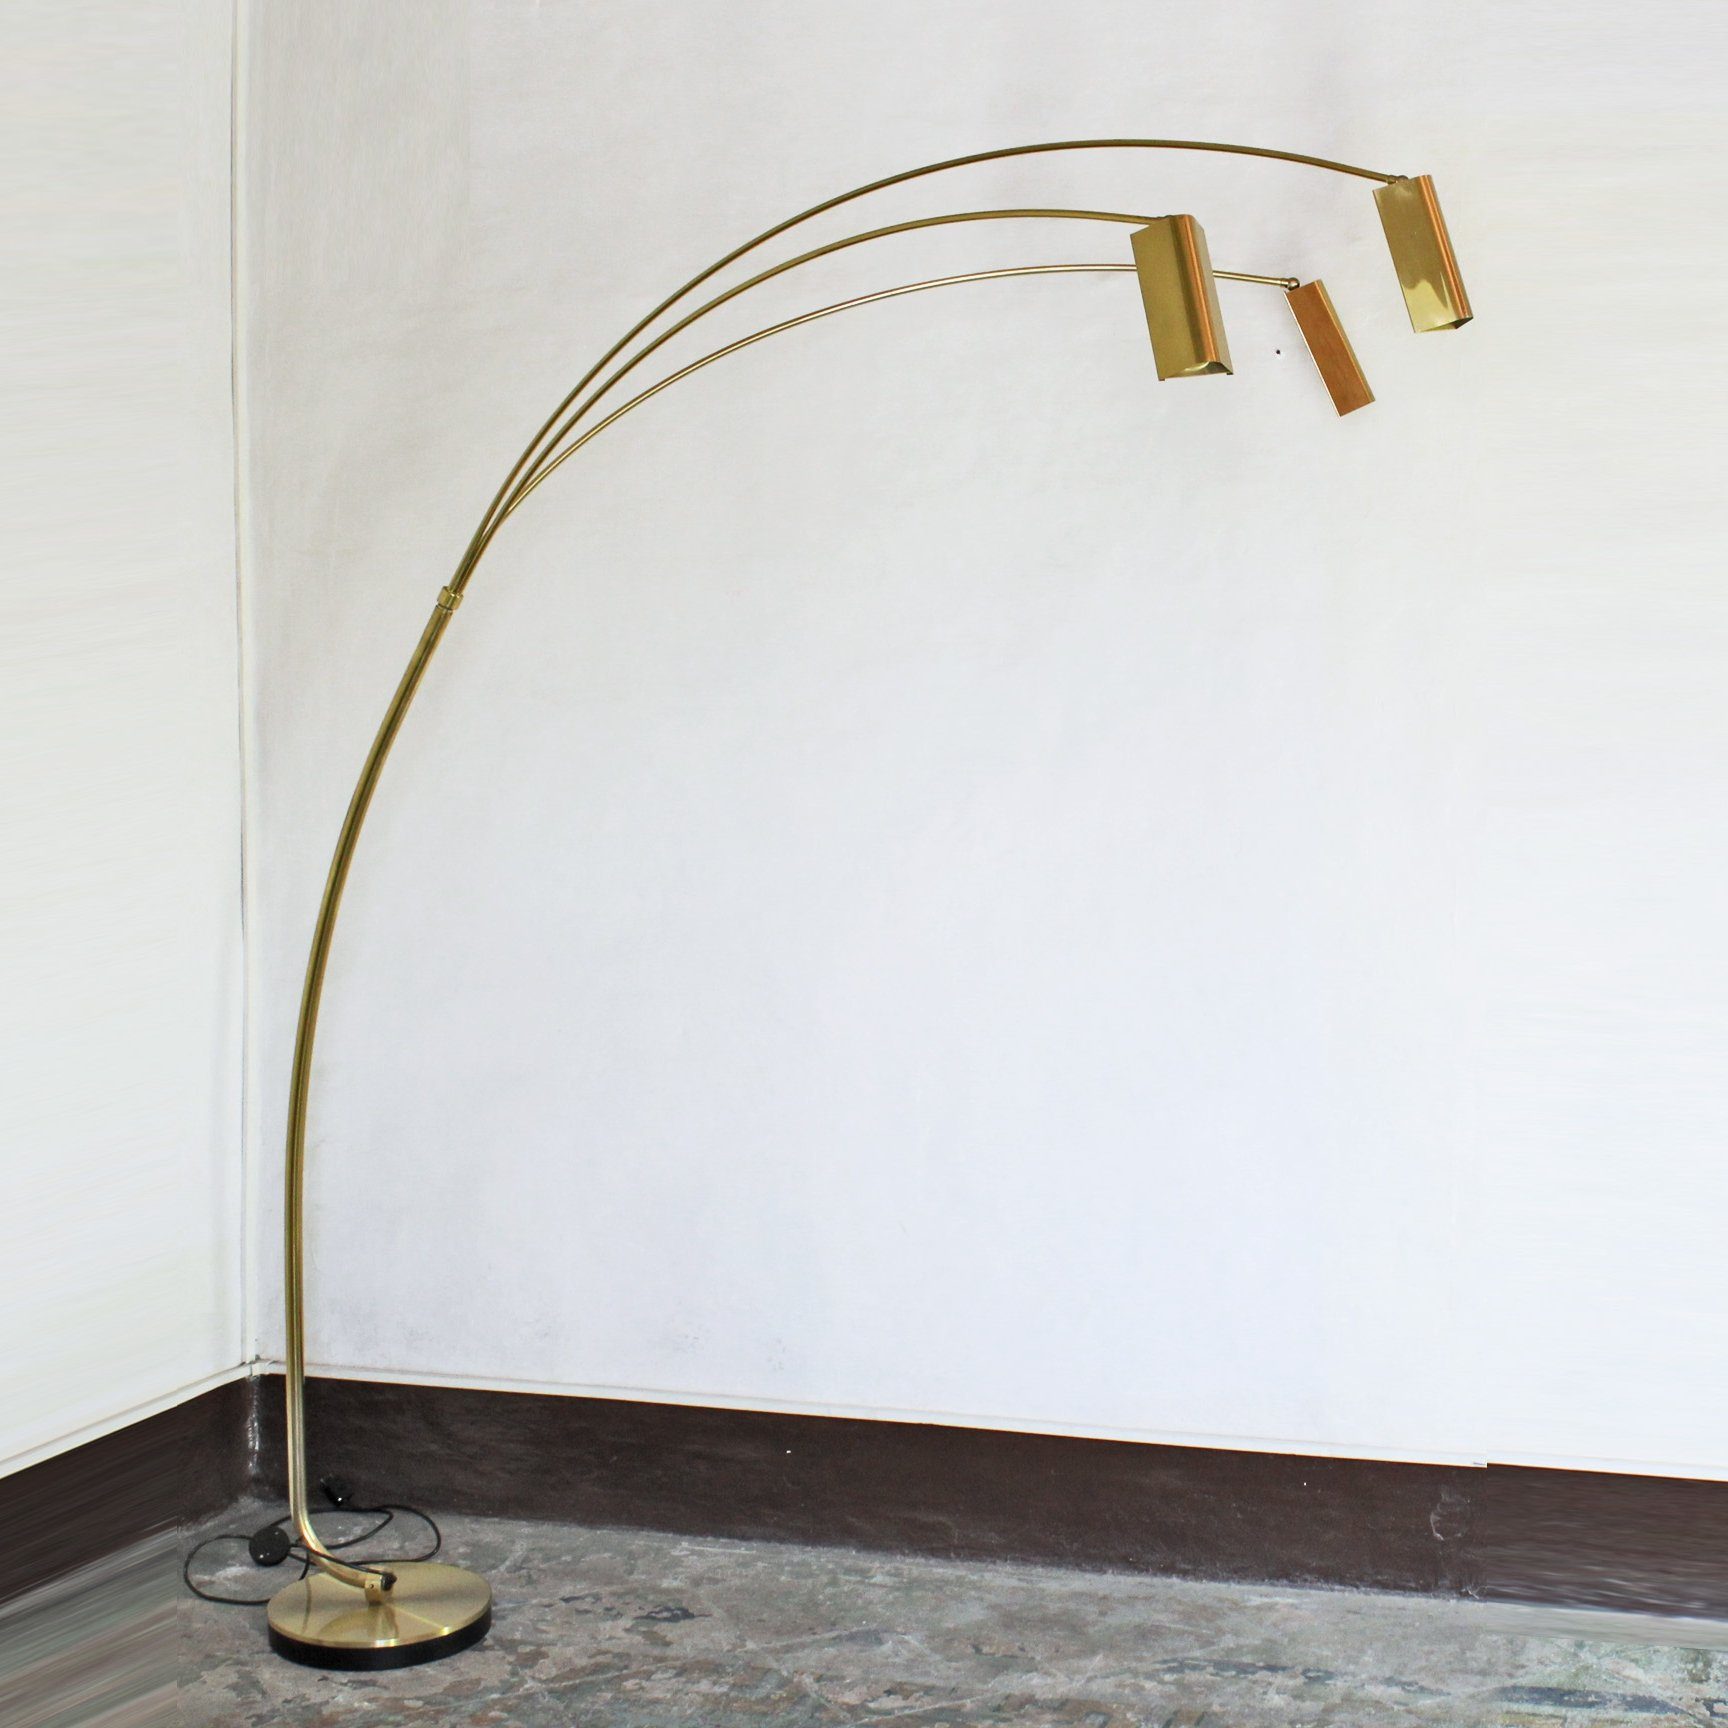 1970s Italian Brass Floor Lamp 141644